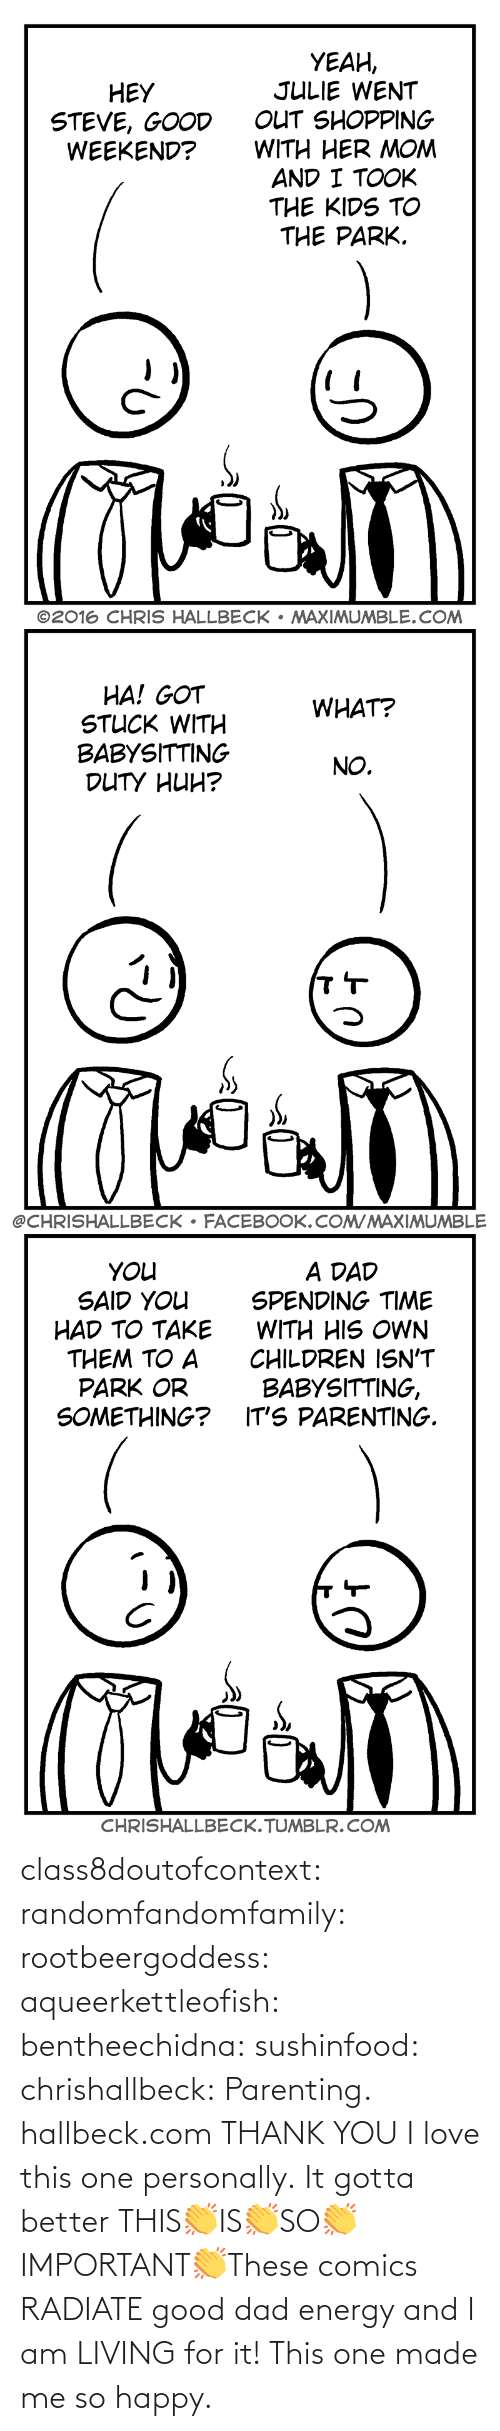 made: class8doutofcontext: randomfandomfamily:  rootbeergoddess:  aqueerkettleofish:  bentheechidna:  sushinfood:  chrishallbeck:  Parenting. hallbeck.com  THANK YOU  I love this one personally.    It gotta better   THIS👏IS👏SO👏IMPORTANT👏These comics RADIATE good dad energy and I am LIVING for it!    This one made me so happy.